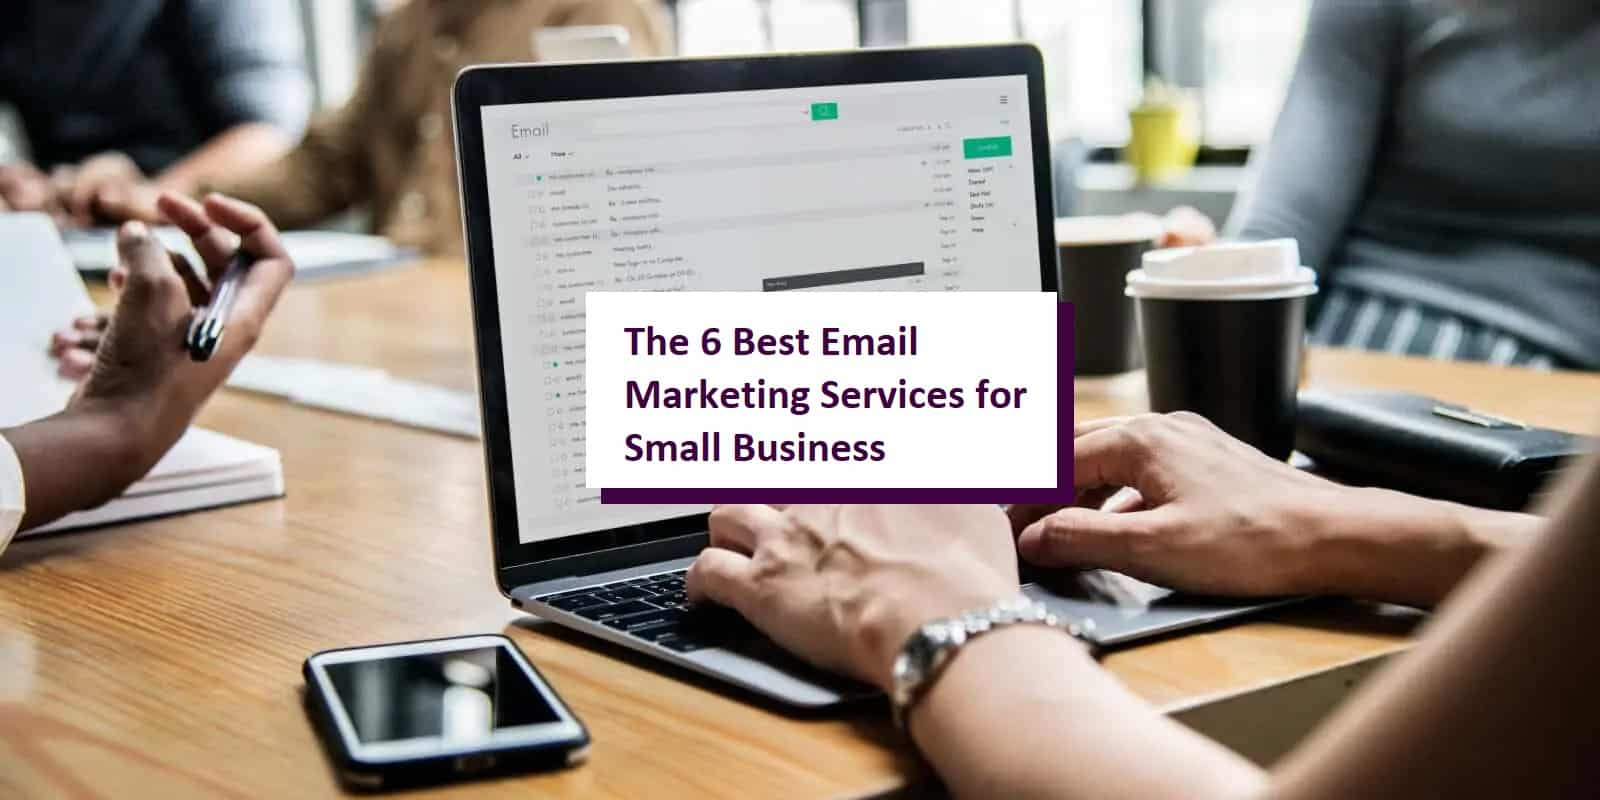 The 6 Best Email Marketing Services for Small Business